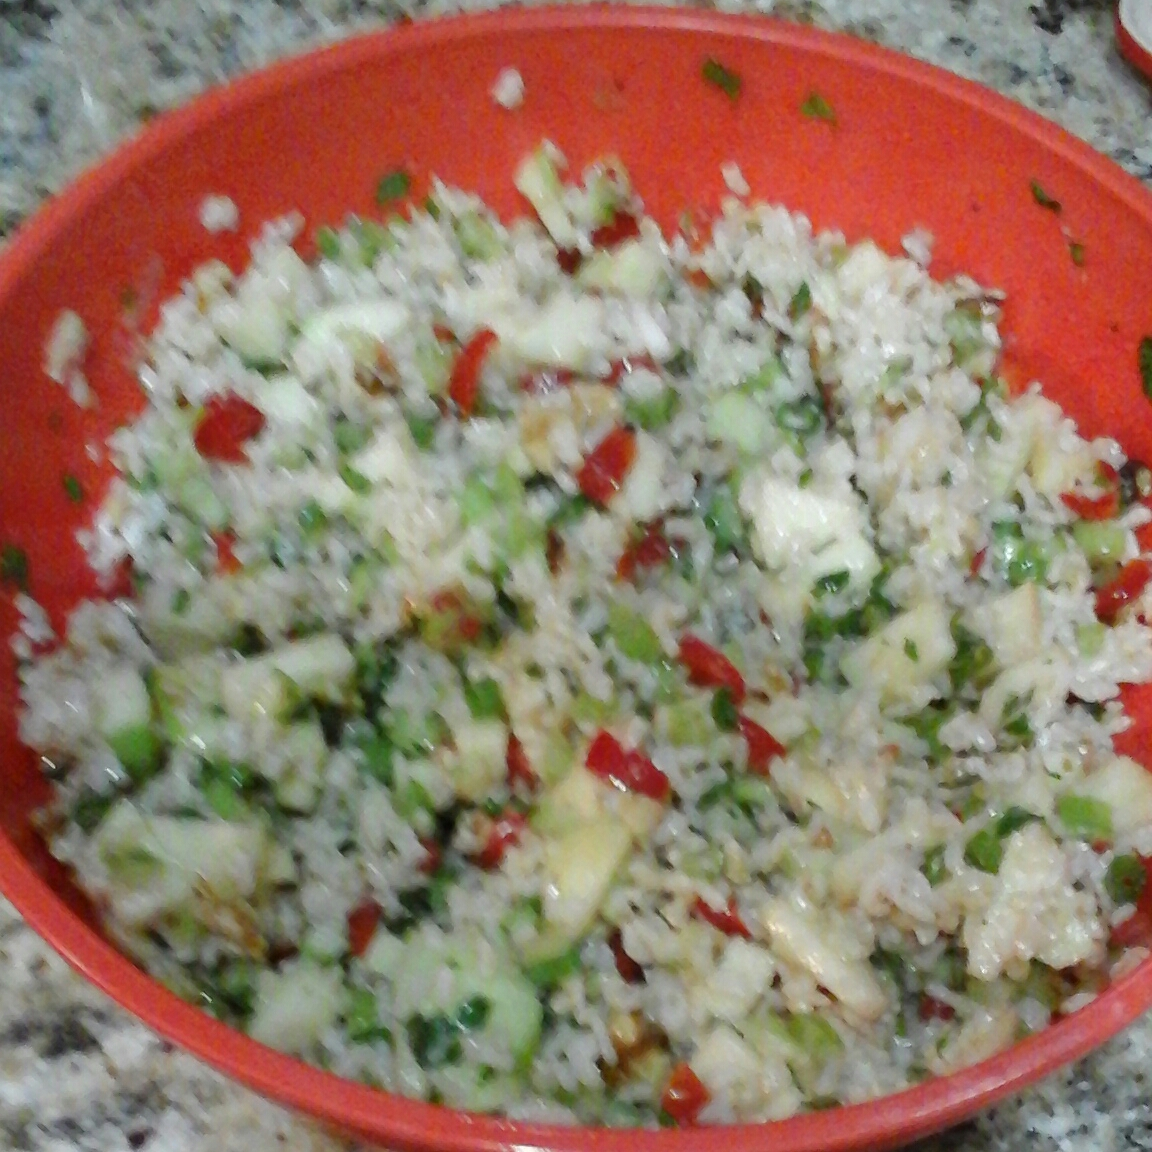 Brown Rice salad with apple and walnuts,red bell pepper